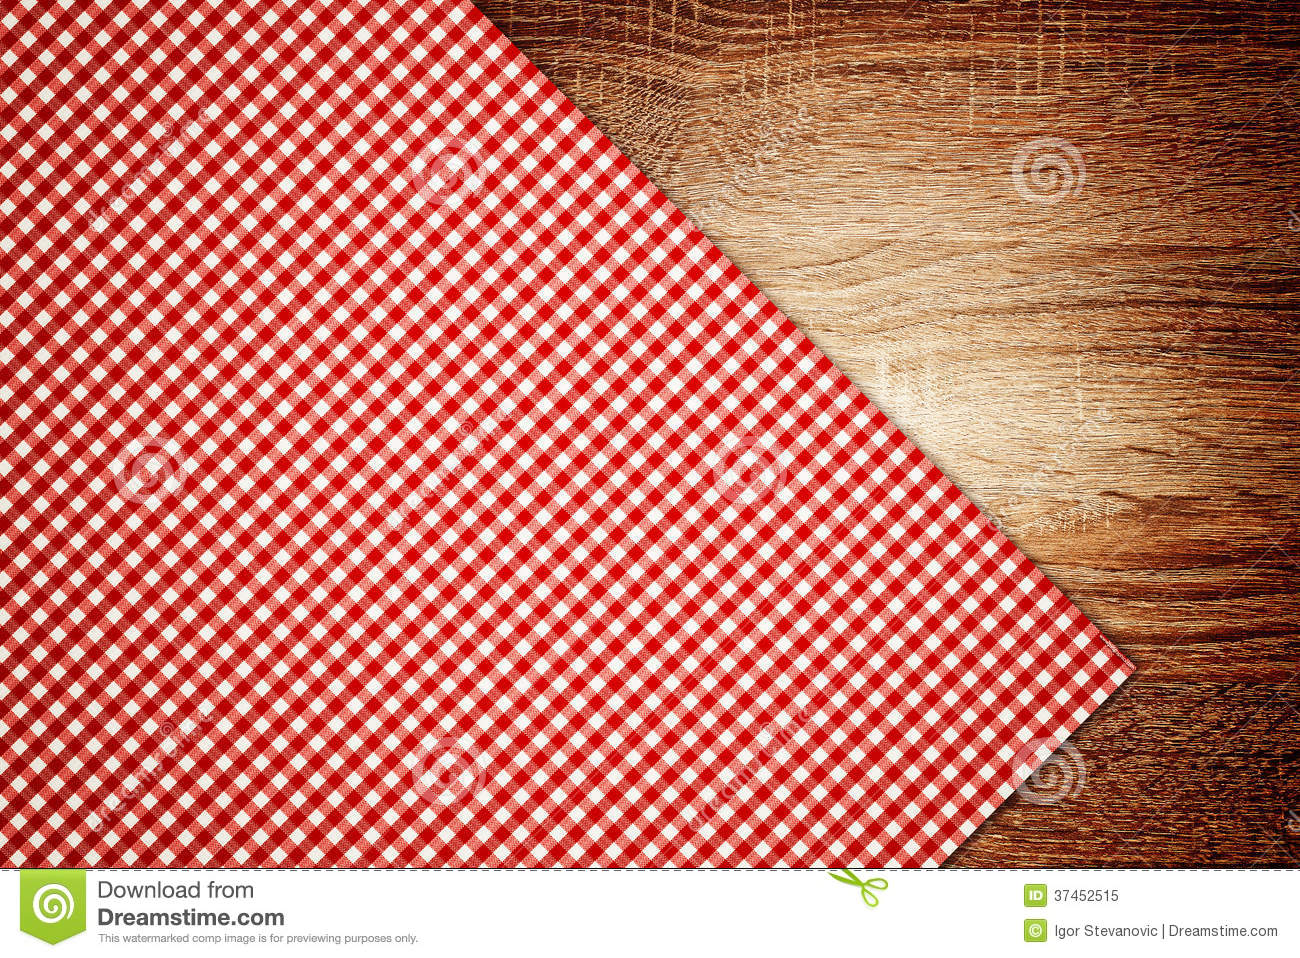 Table cloth, kitchen napkin on wooden table as background.